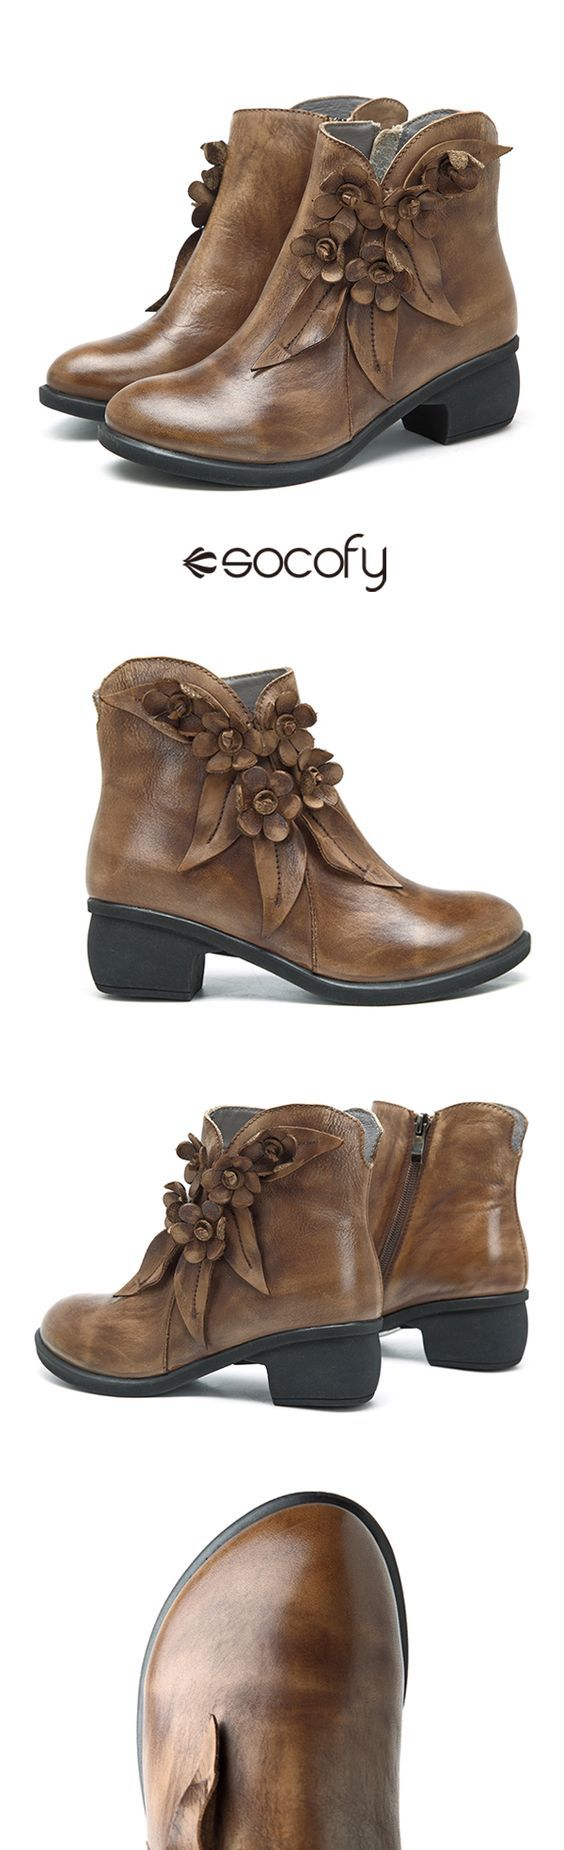 SOCOFY Sooo Comfy Vintage Handmade Floral Ankle Leather Boots is hot-sale.  Come to NewChic to buy womens boots online.